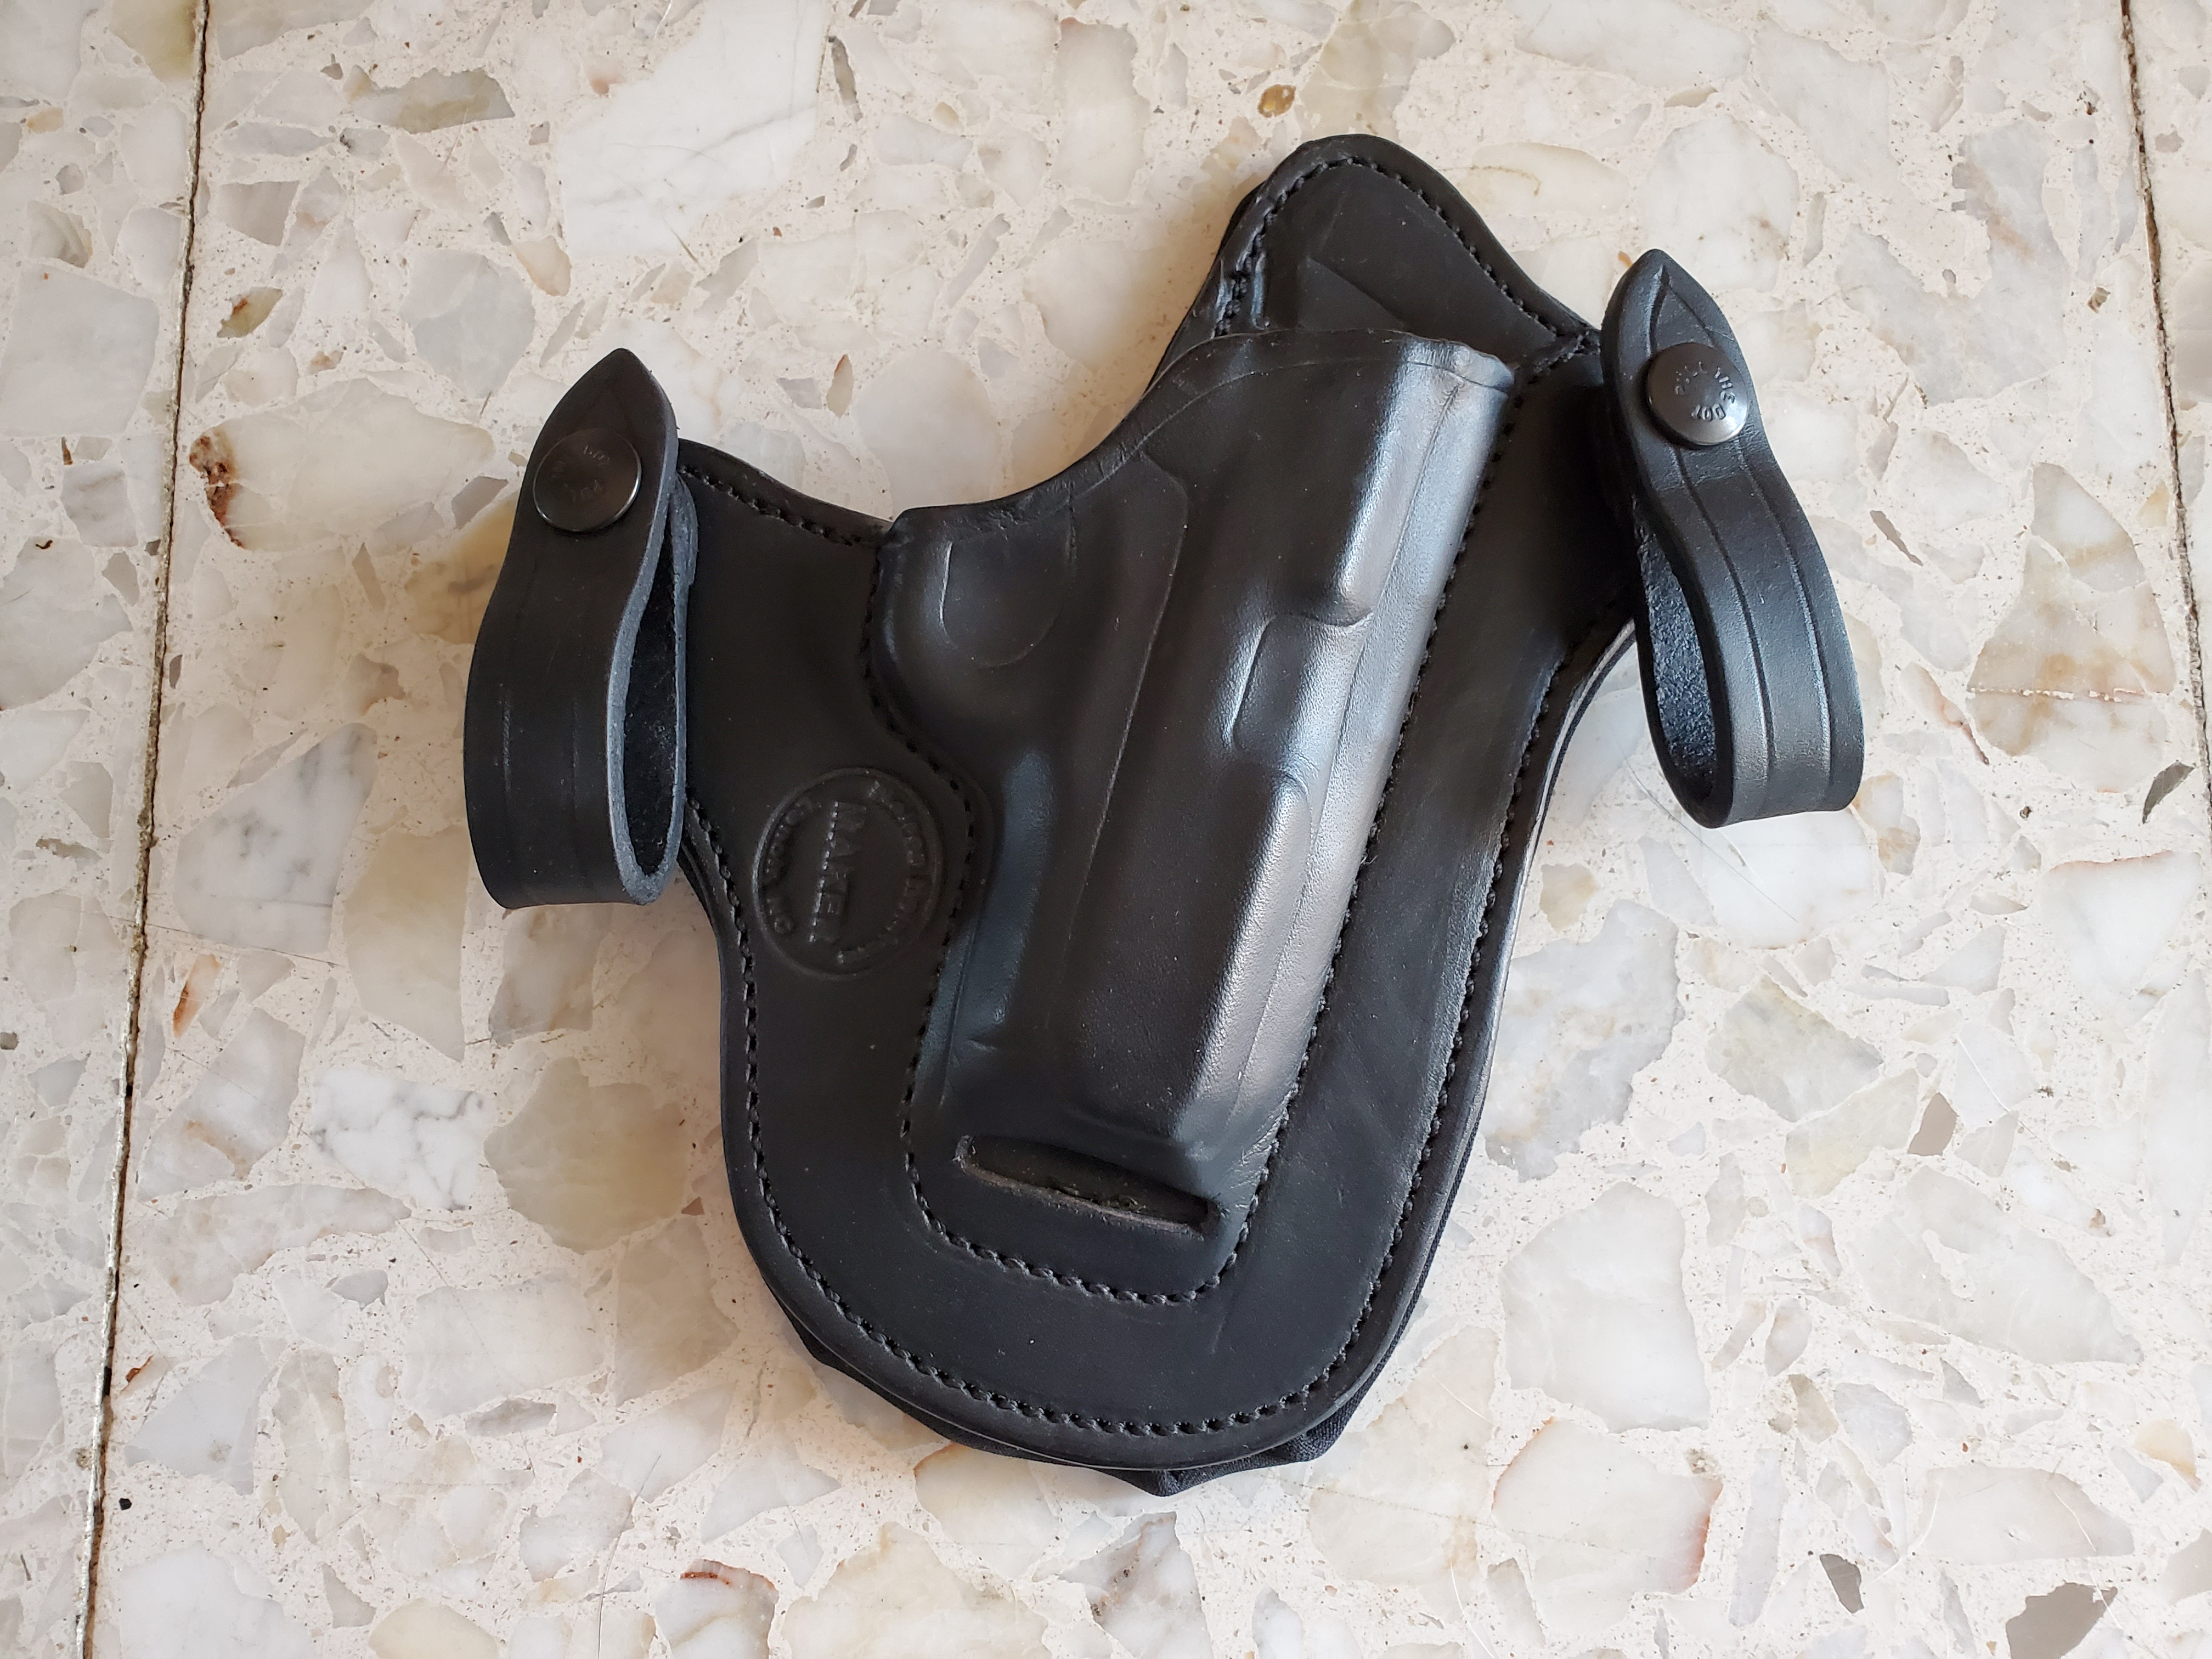 Selling New Nelson Holsters- 10% off Retail and No Wait-20190508_170048.jpg